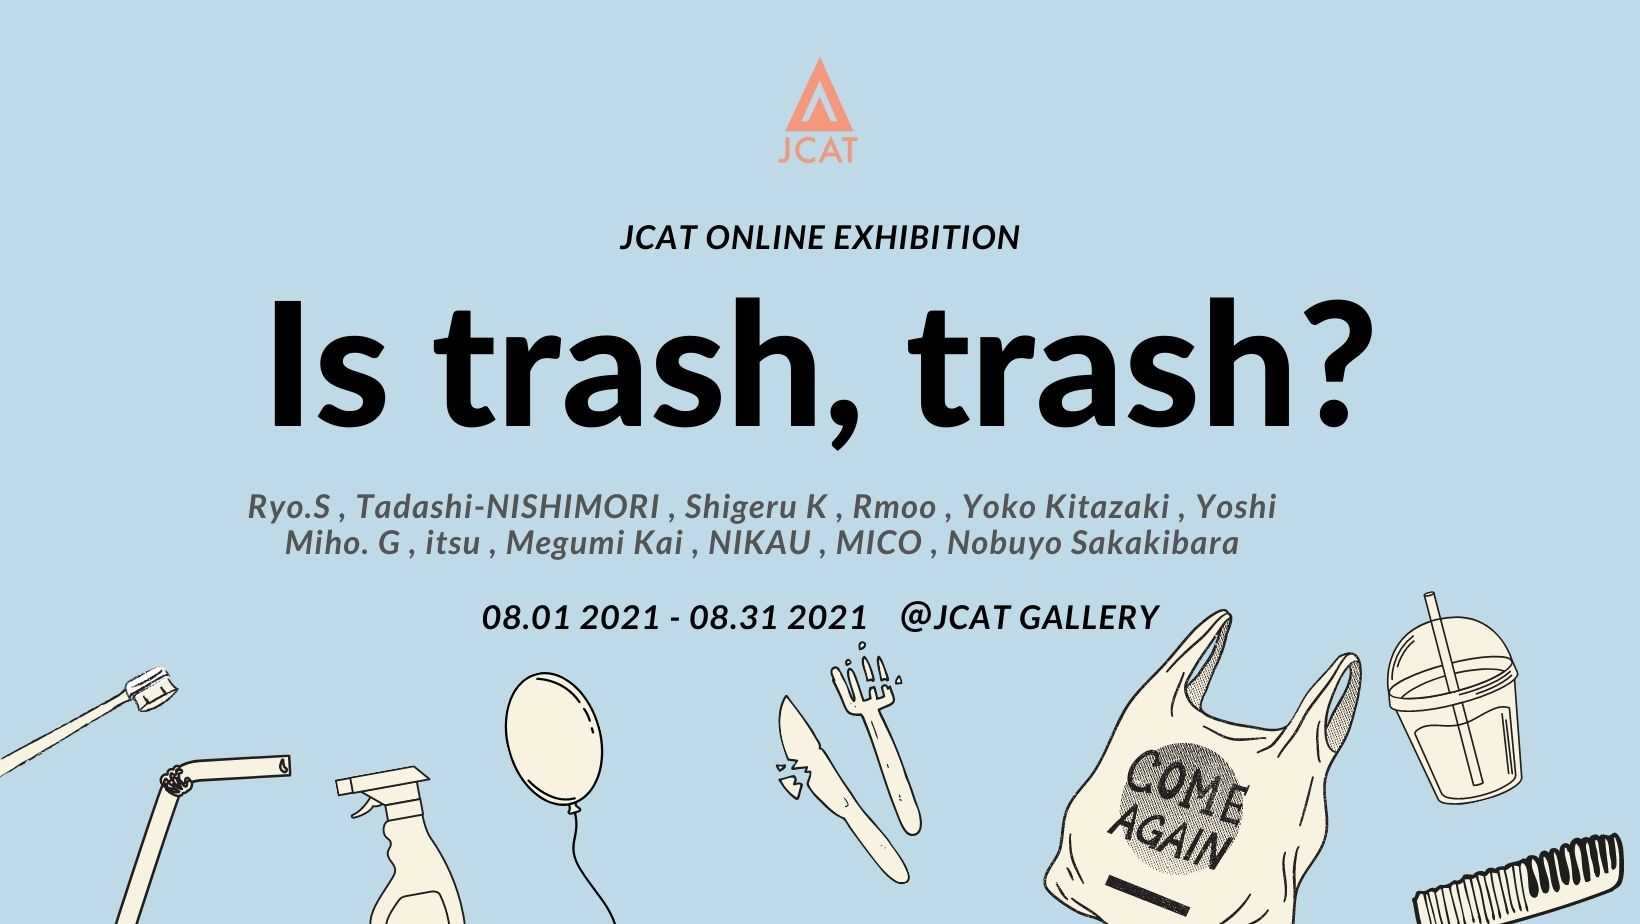 Is trash, trash? August 2021 Exhibition of the Japanese Contemporary Artists Team NY